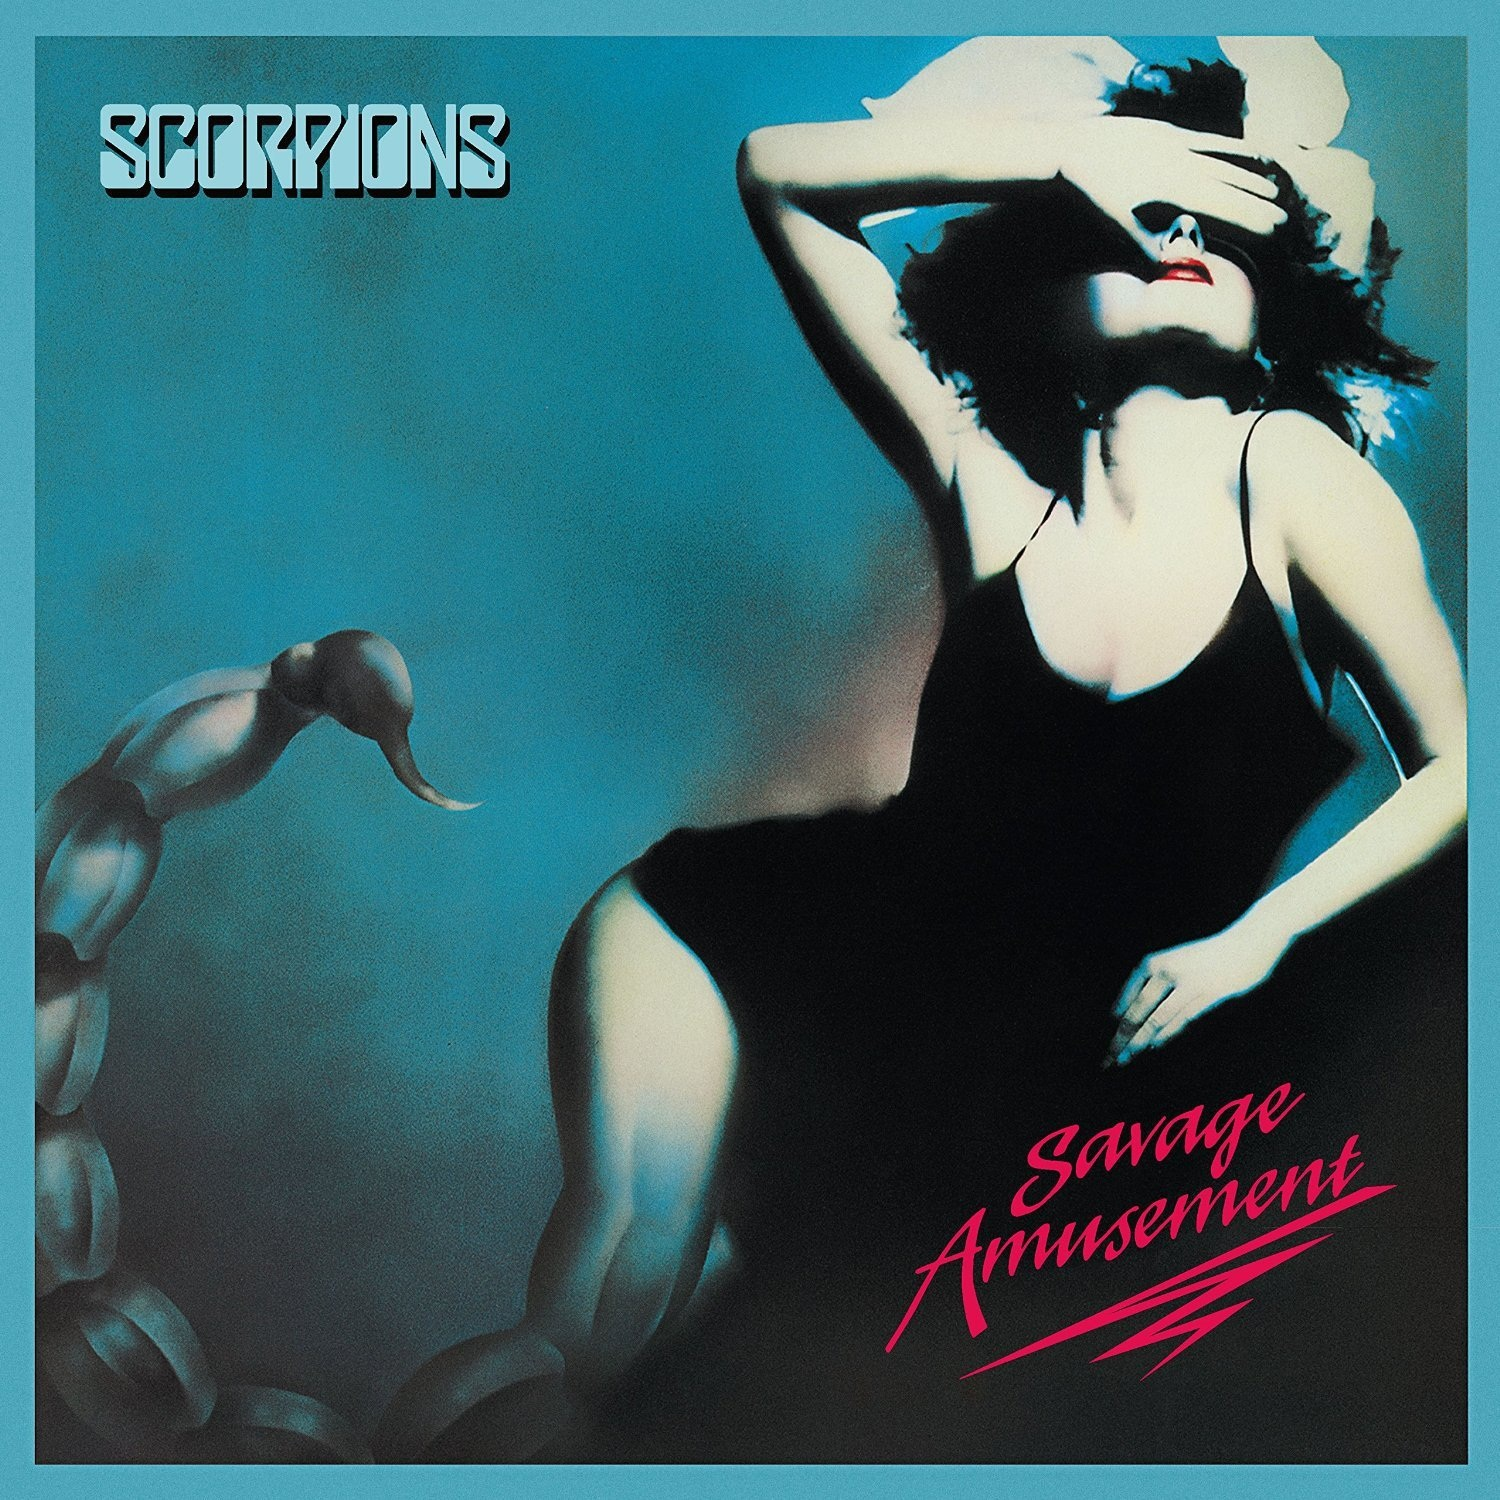 Scorpions. Savage Amusement (LP + CD) vildhjarta vildhjarta masstaden lp cd